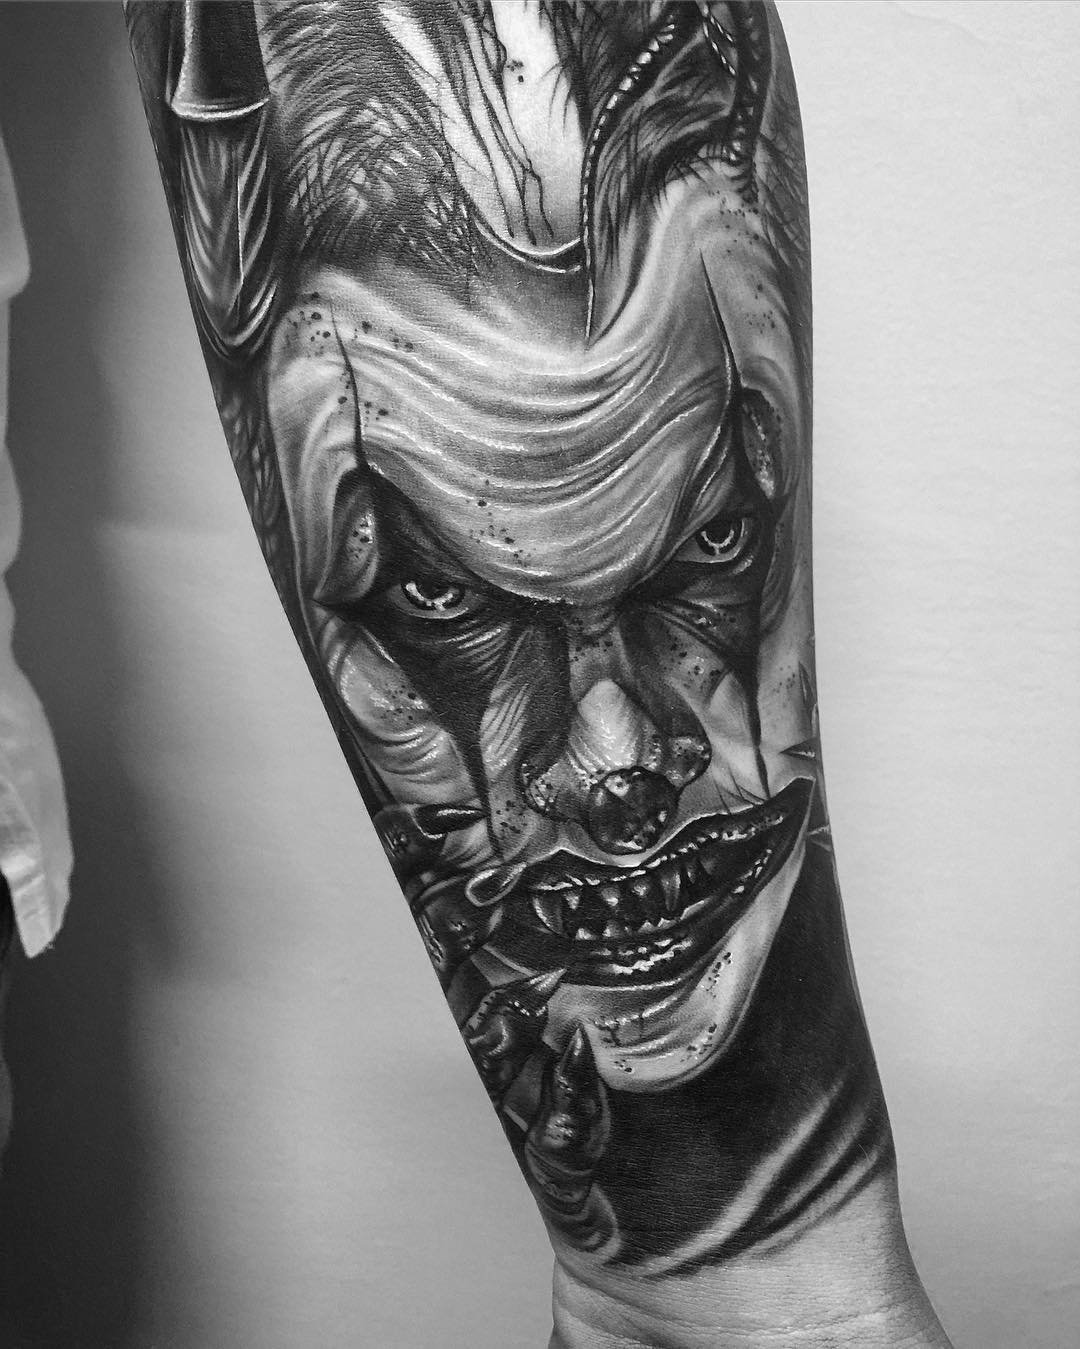 10 Cute Forearm Tattoo Ideas For Guys 70 cool forearm tattoos for men yeahtattoos 1 2021